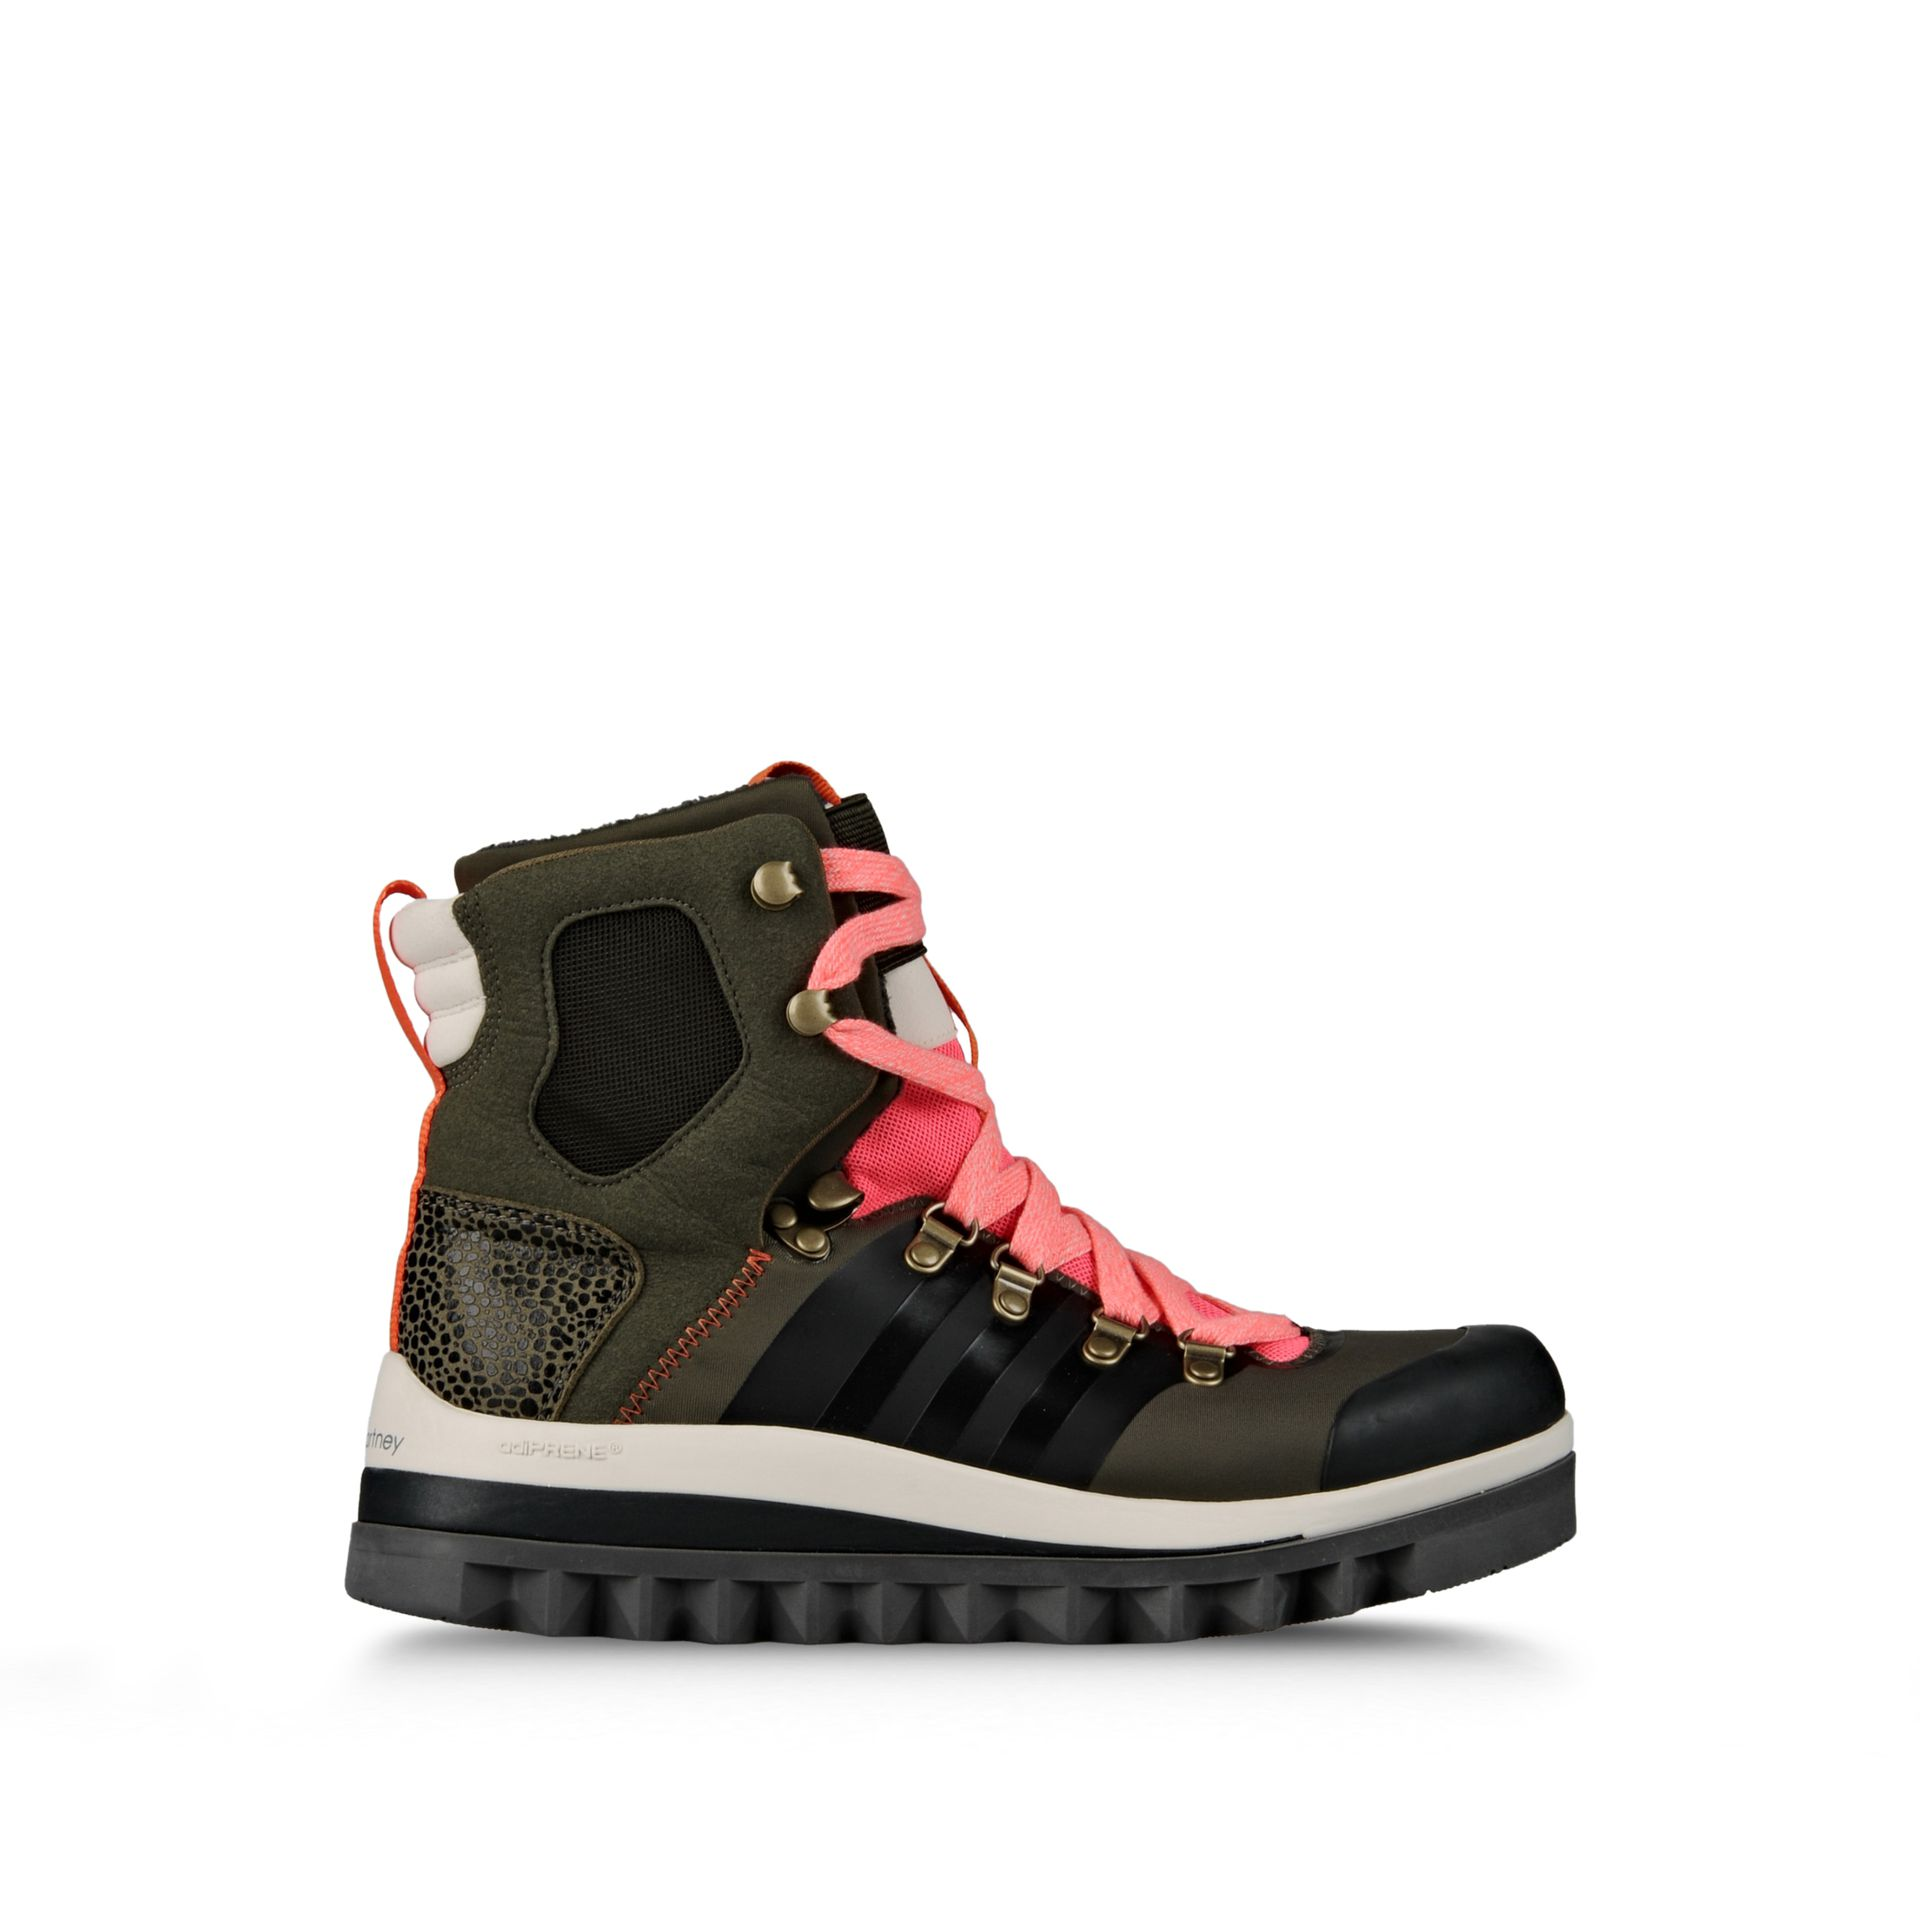 Stella McCartney Eulampis Boots in Green